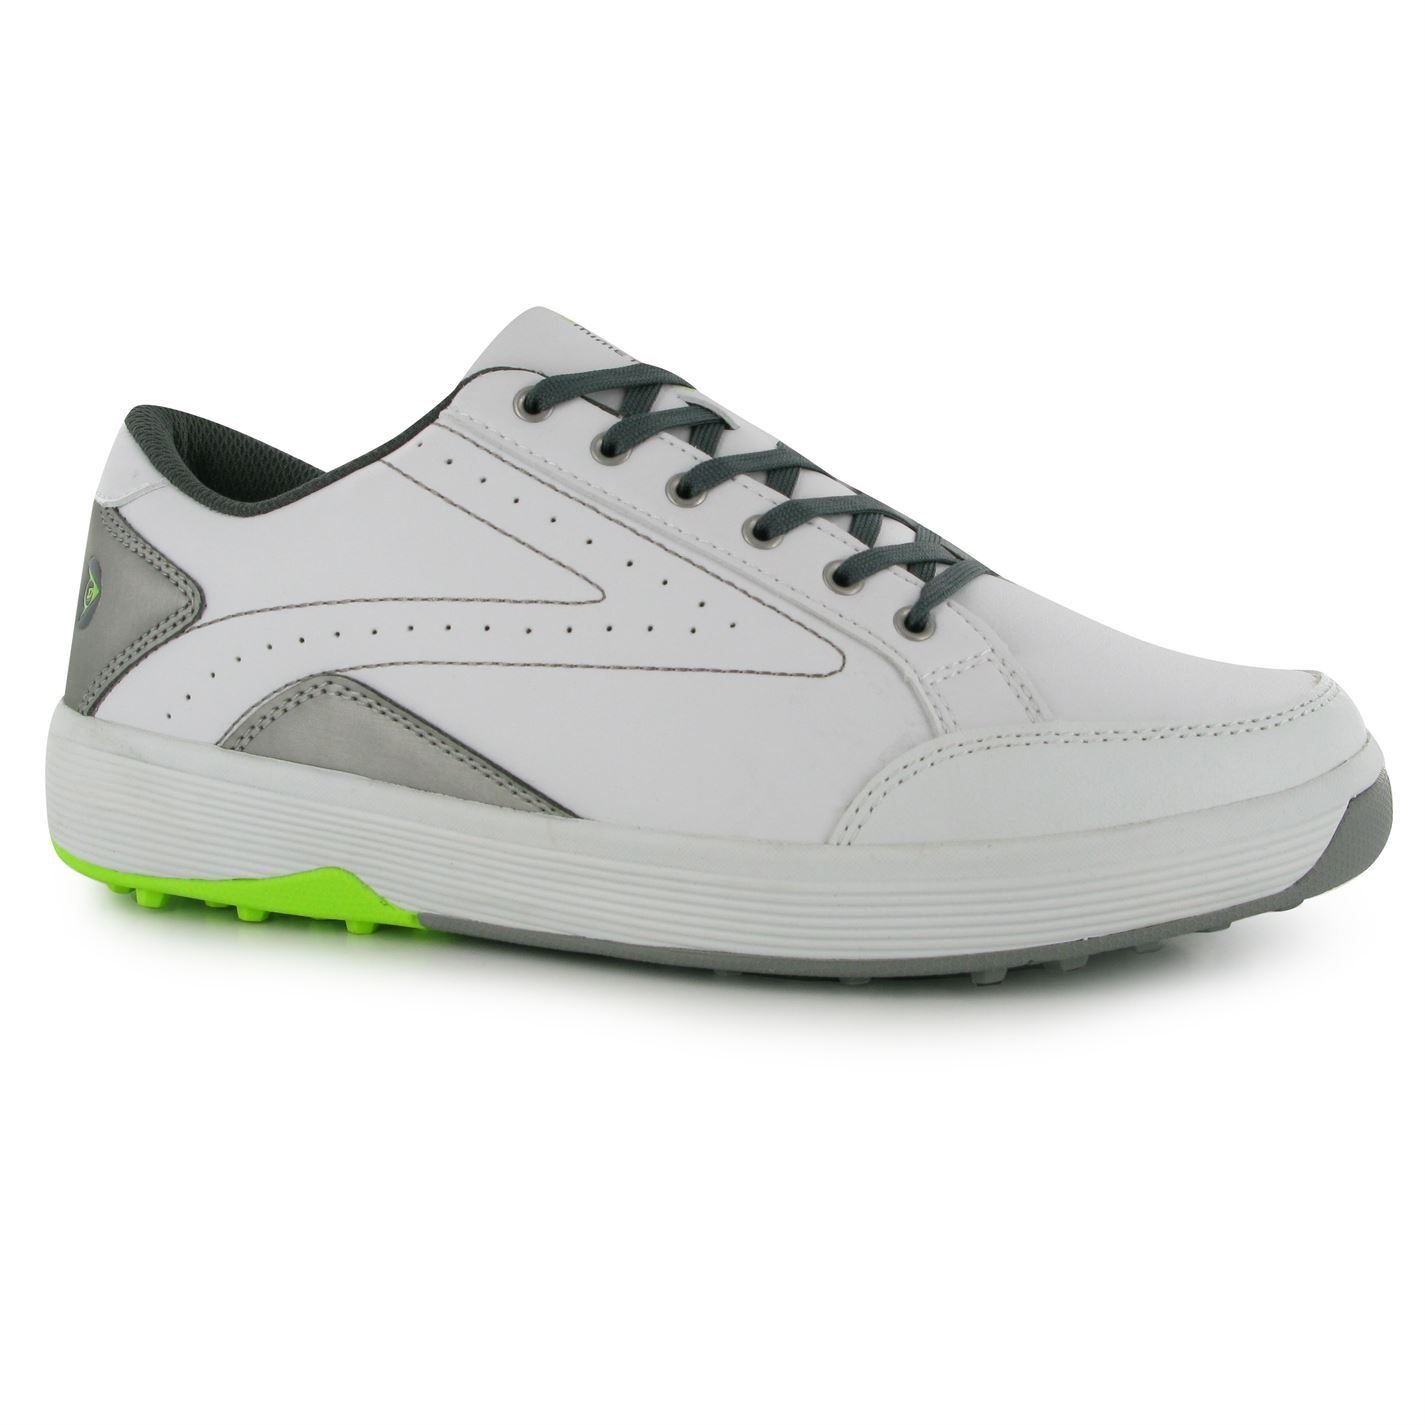 dunlop biomimetic 300 casual golf shoes mens whe trainers